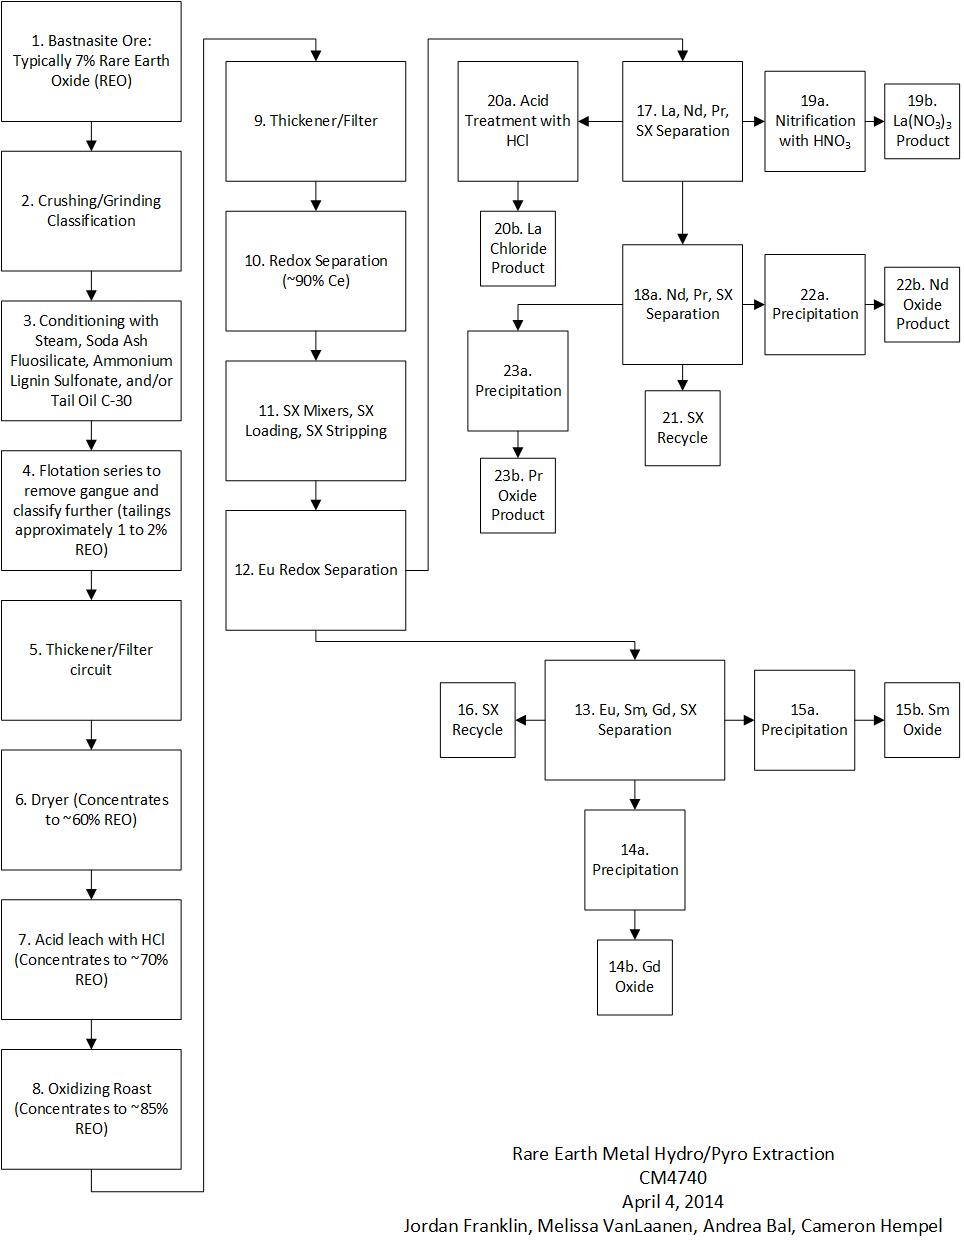 Clinic Process Flow Chart: Pyrometallury rare earth metal extraction from bastnastie ore ,Chart